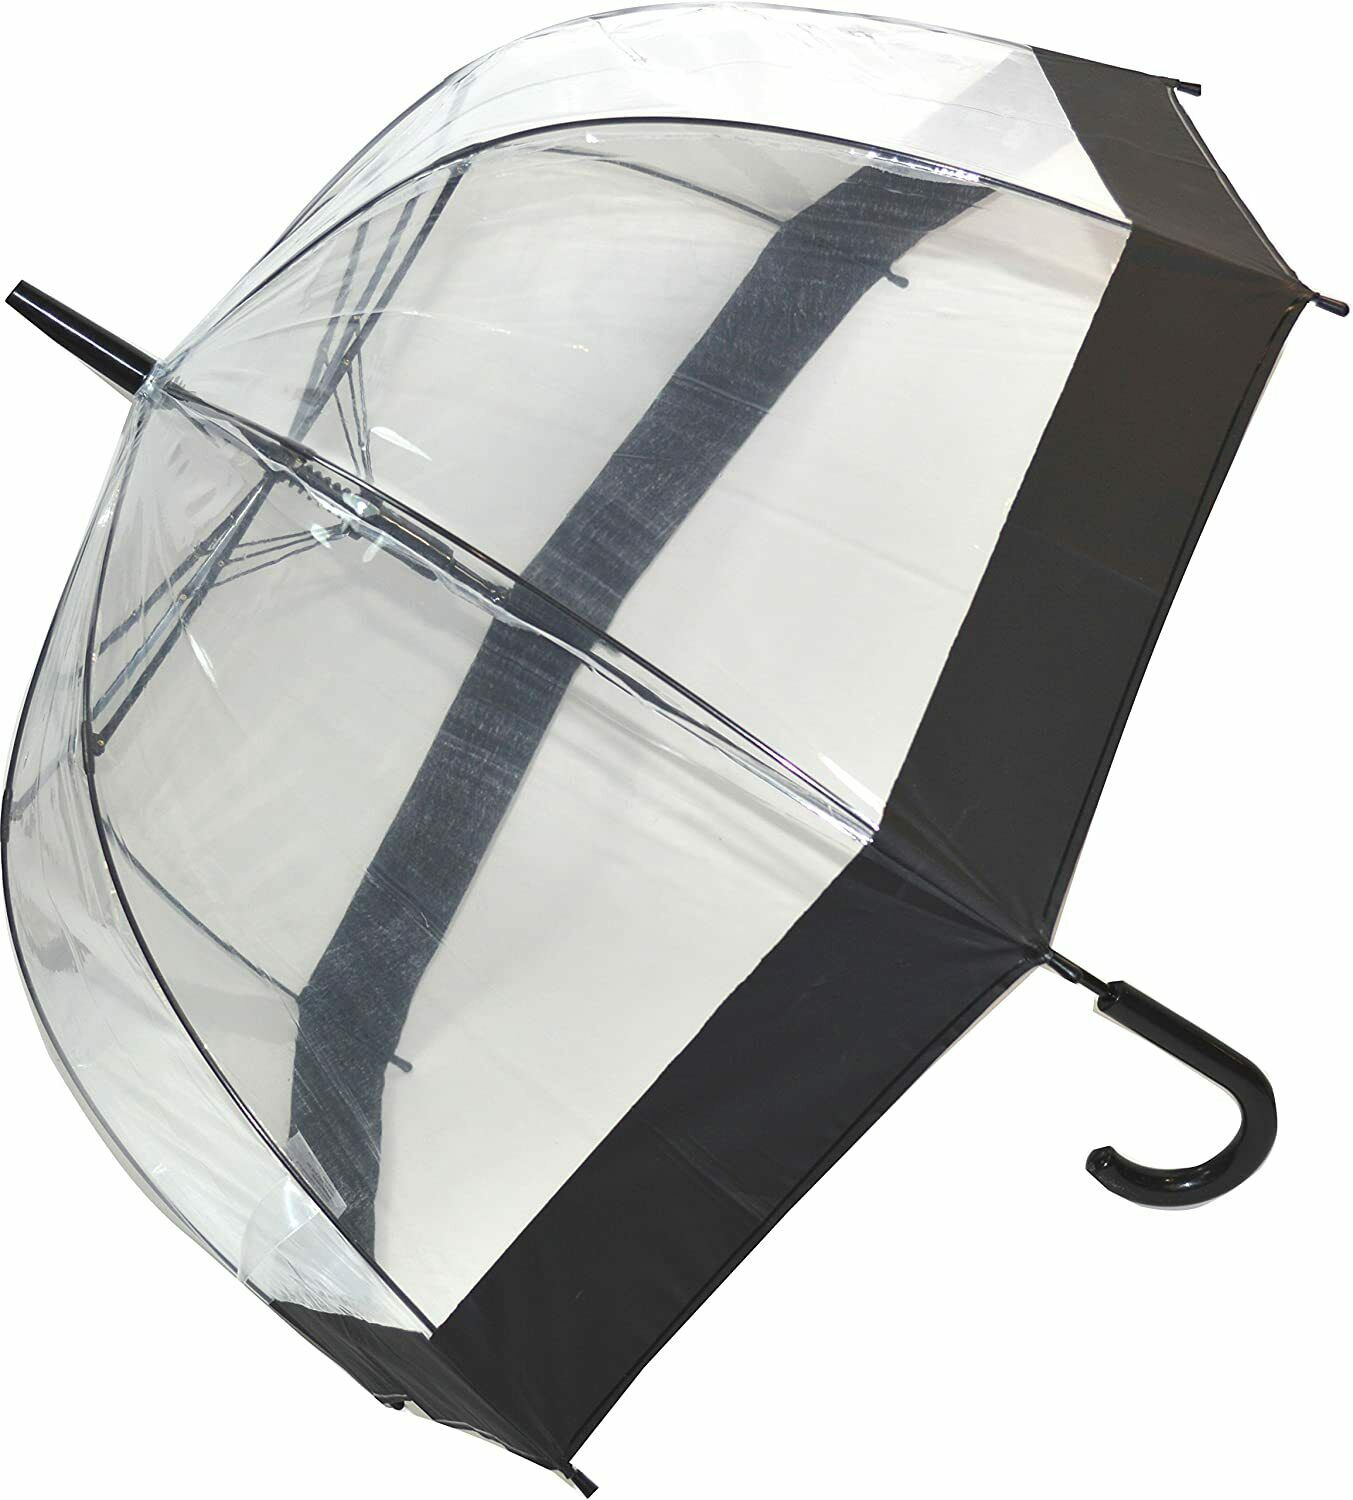 SOAKE Clear Umbrella Dome with Walking Stick Handle with Black Trim Unisex